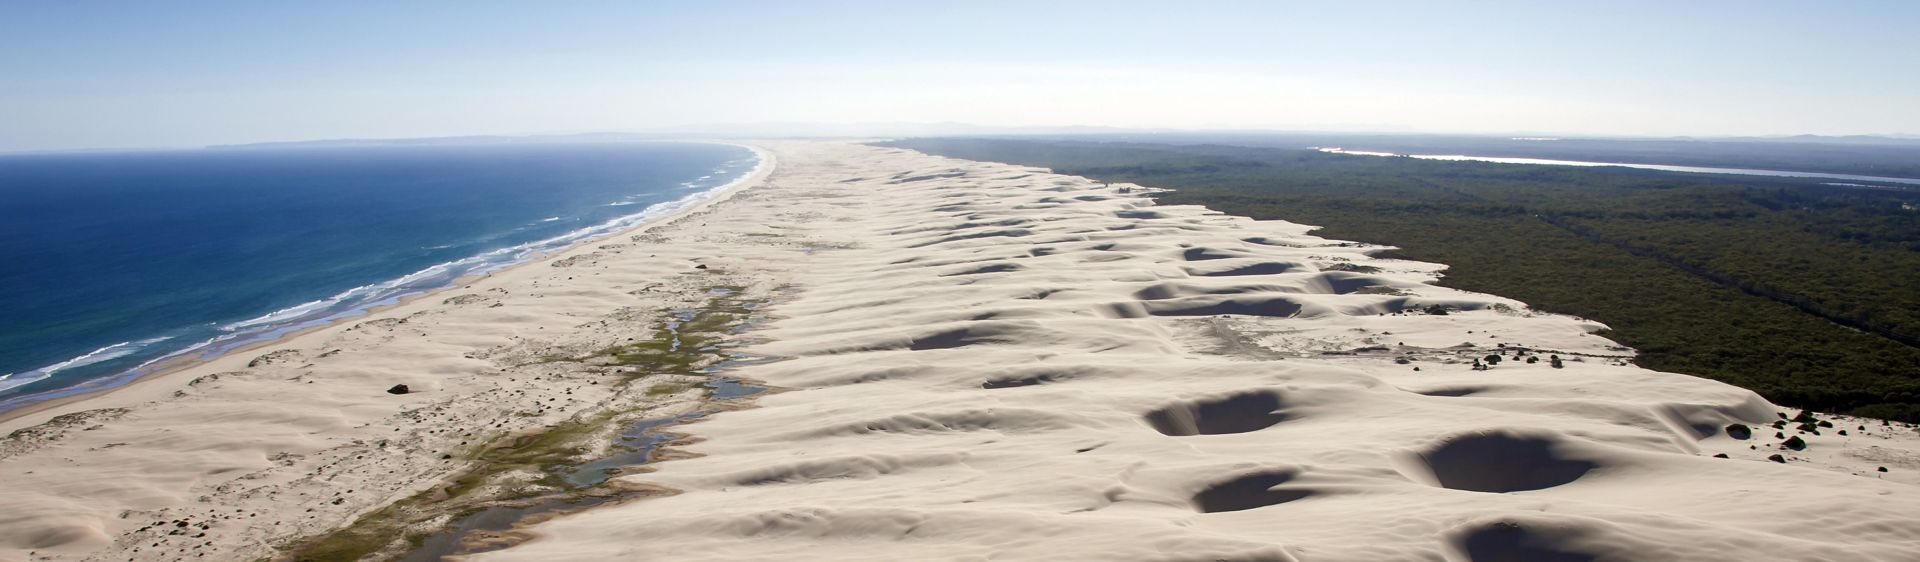 The towering Stockton Bight sand dunes in Worimi Conservation Lands, Port Stephens